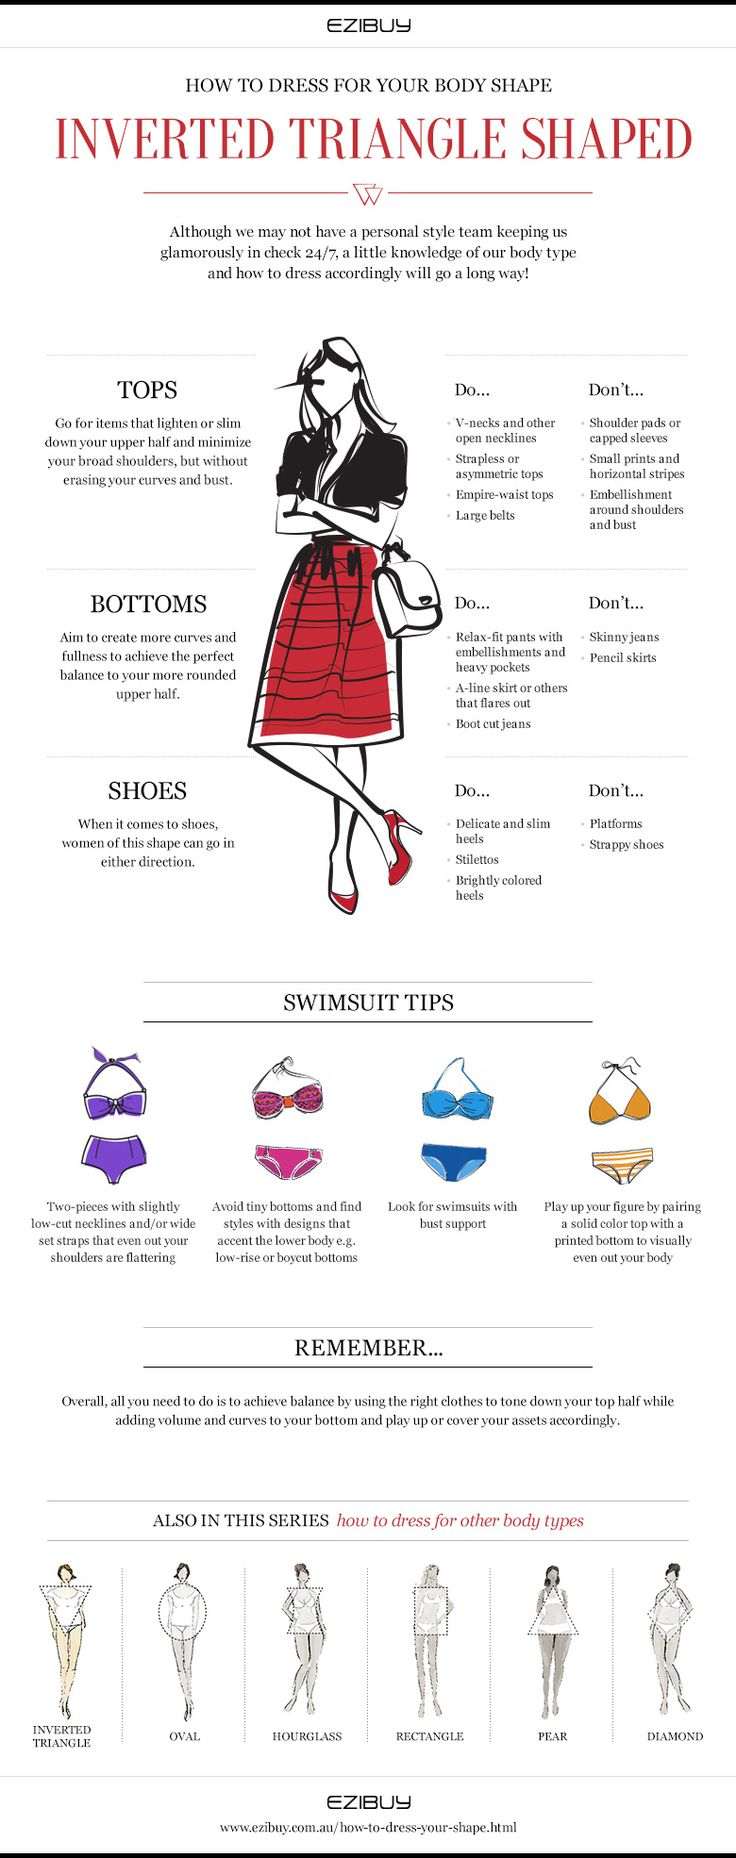 Understand how to Dress Your Inverted Triangle Body Shape http://www.ezibuy.com.au/how-to-dress-your-shape      or to decide your body type visit http://www.style-yourself-confident.com/what-is-my-body-type.html    #body type #inverted triangle